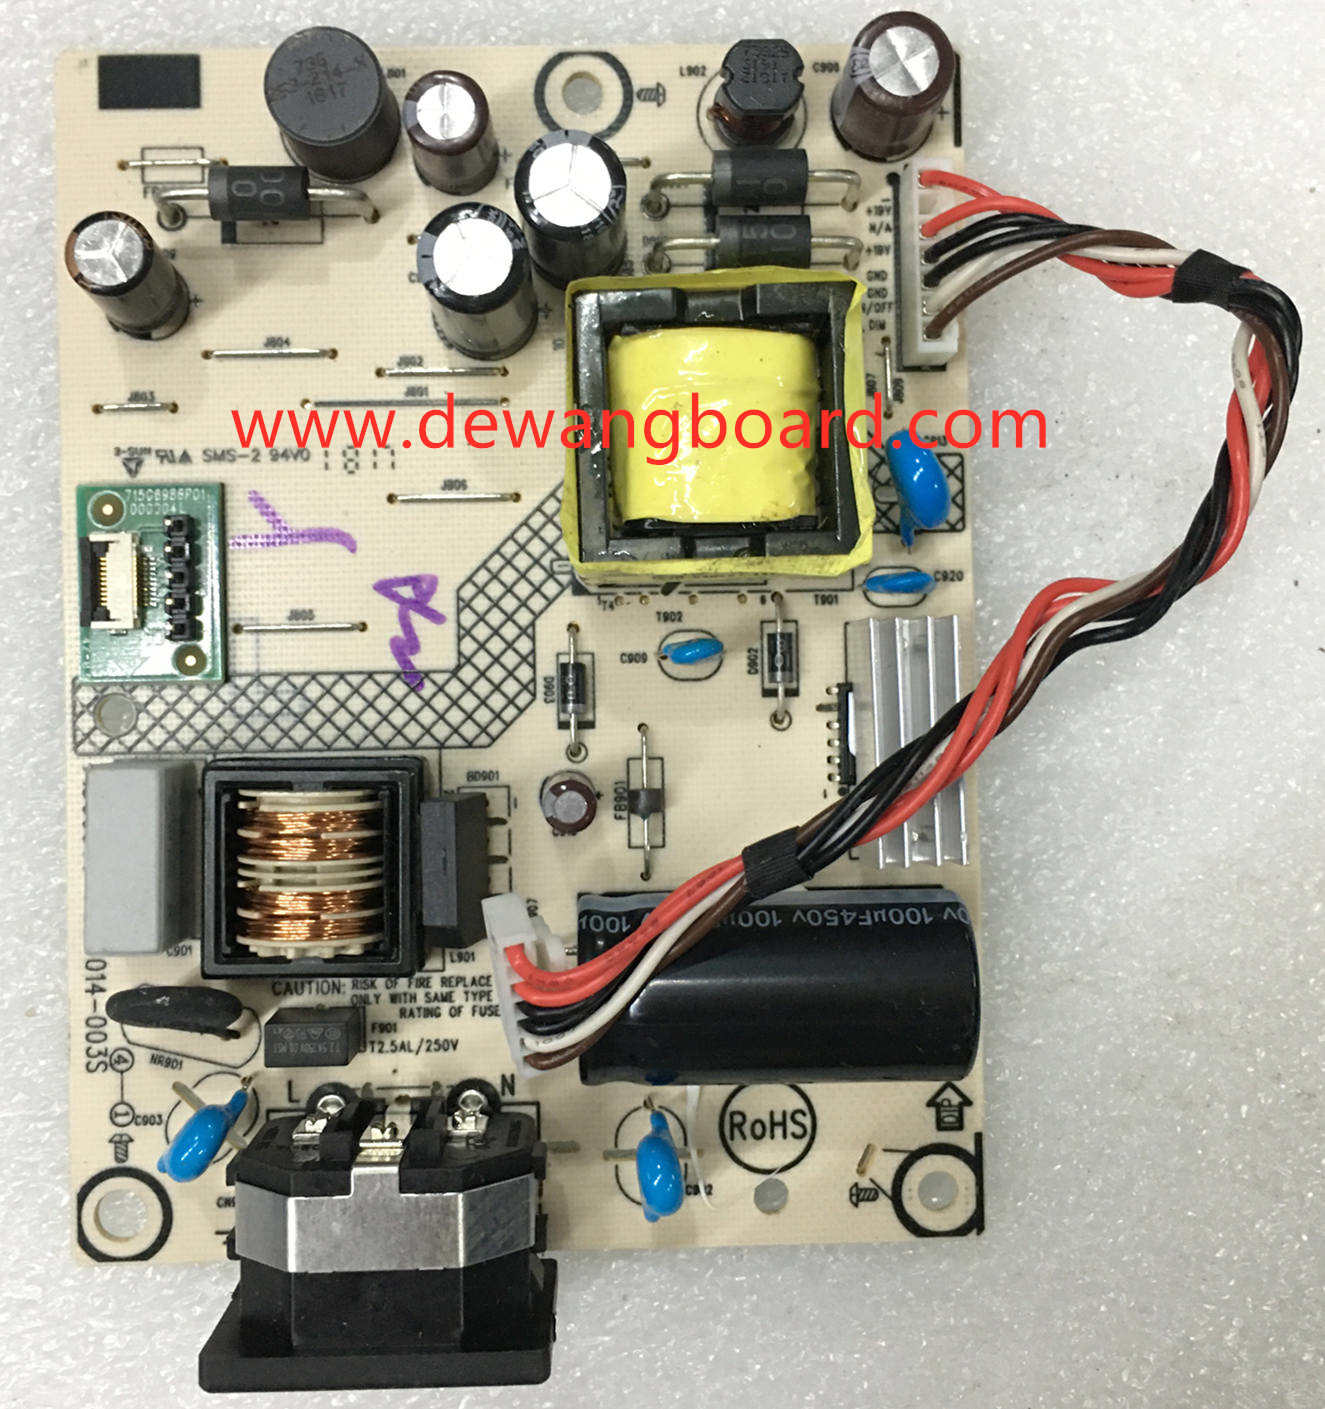 viewsonic VA229 power supply board 715G6503-P03-014-003S